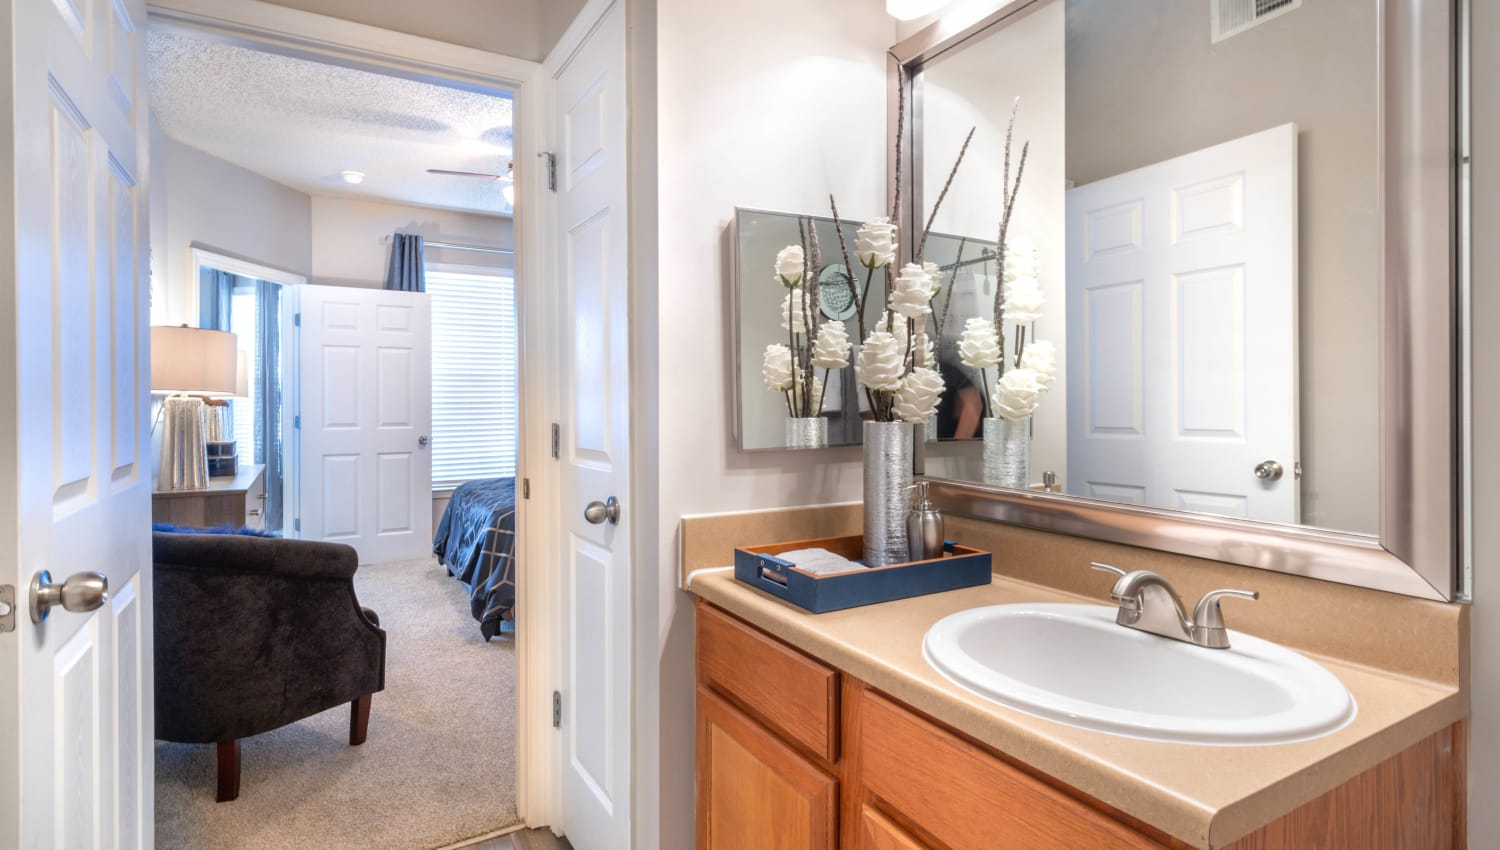 Guest bathroom with a large vanity mirror in a model home at Olympus Fenwick in Savannah, Georgia